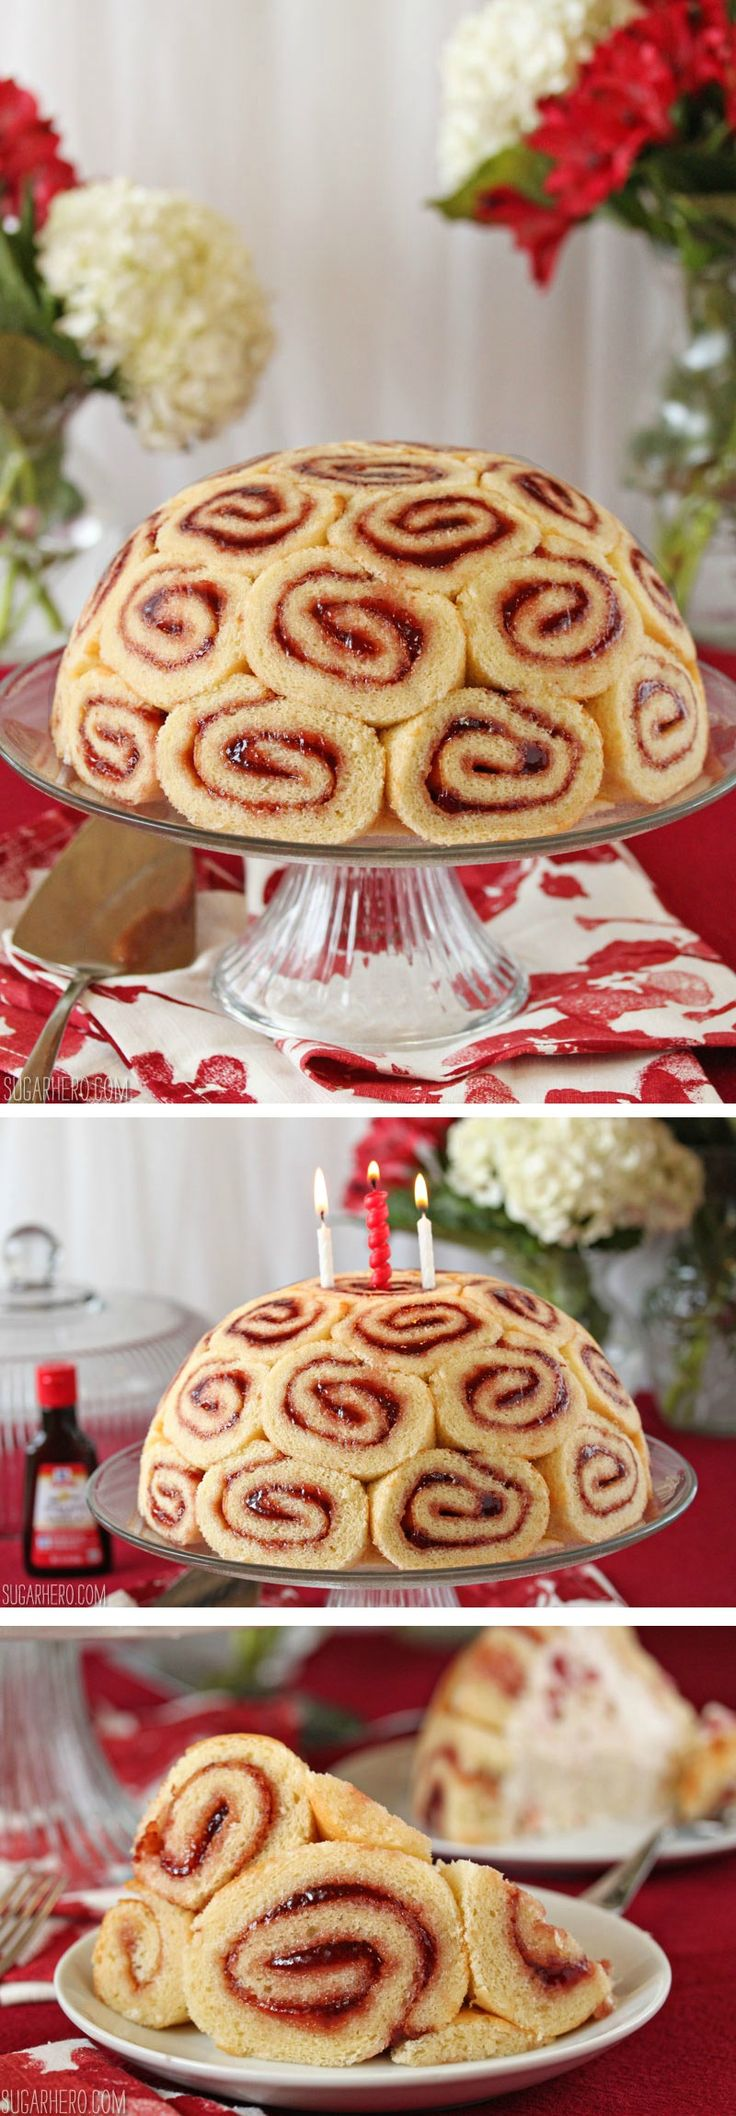 Charlotte Royale - a beautiful cake with Swiss rolls on the outside and vanilla-strawberry mousse inside! | From SugarHero.com